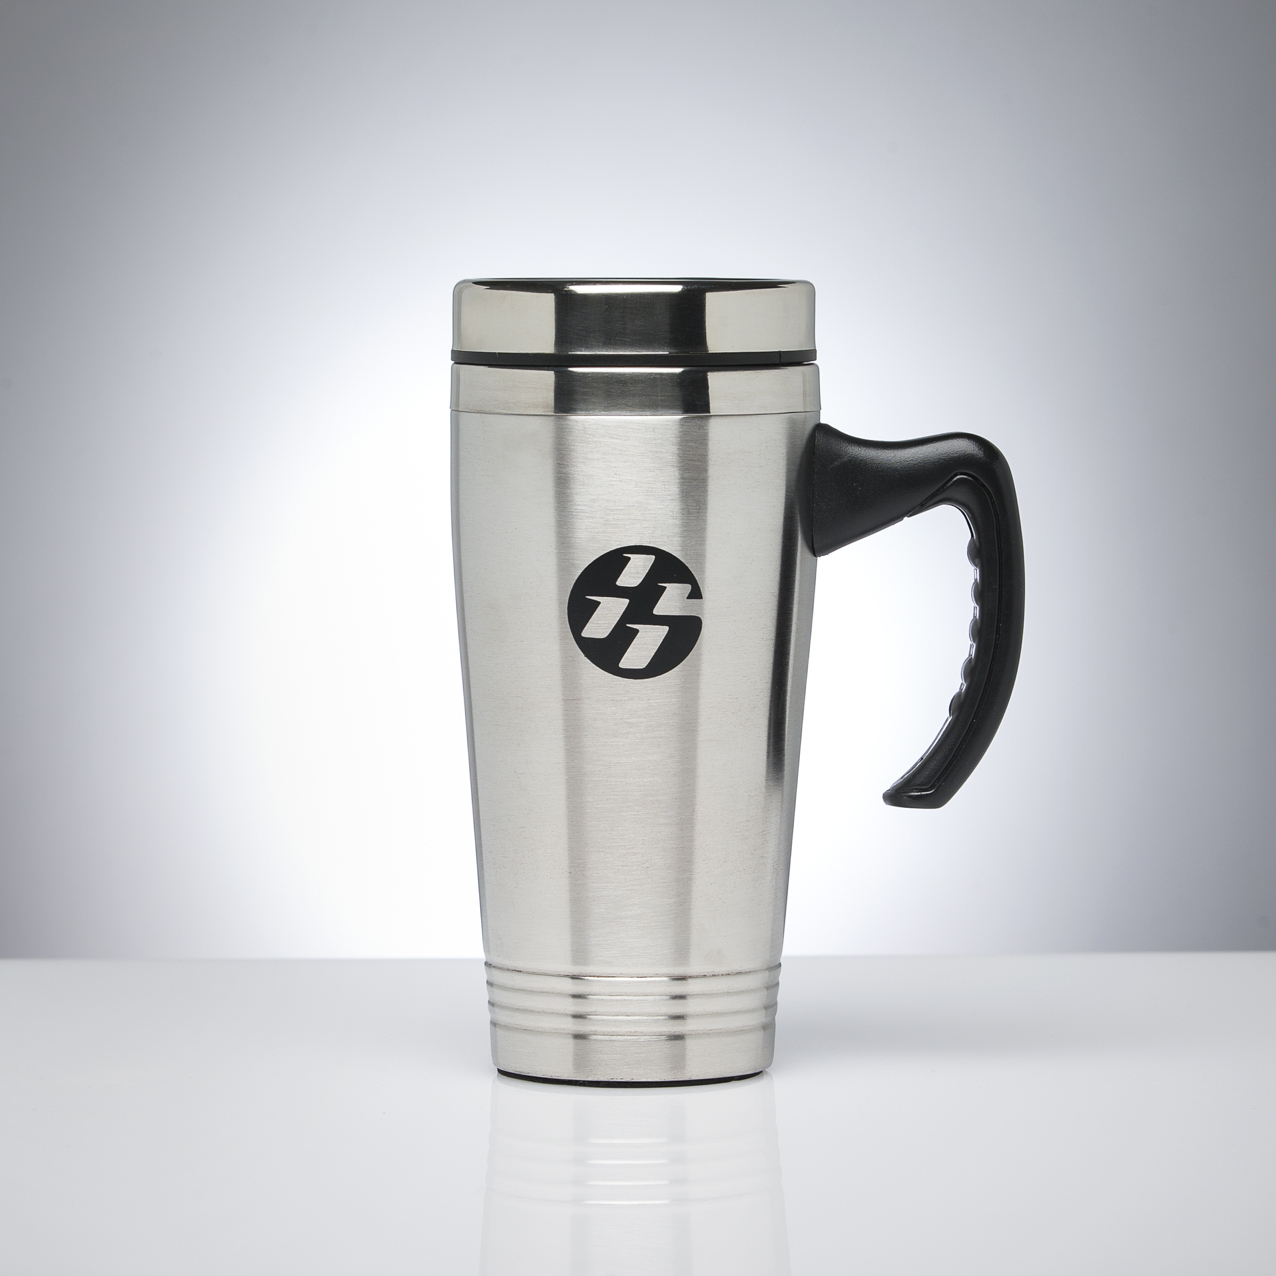 Image of: Stainless Steel Travel Mug with Handle